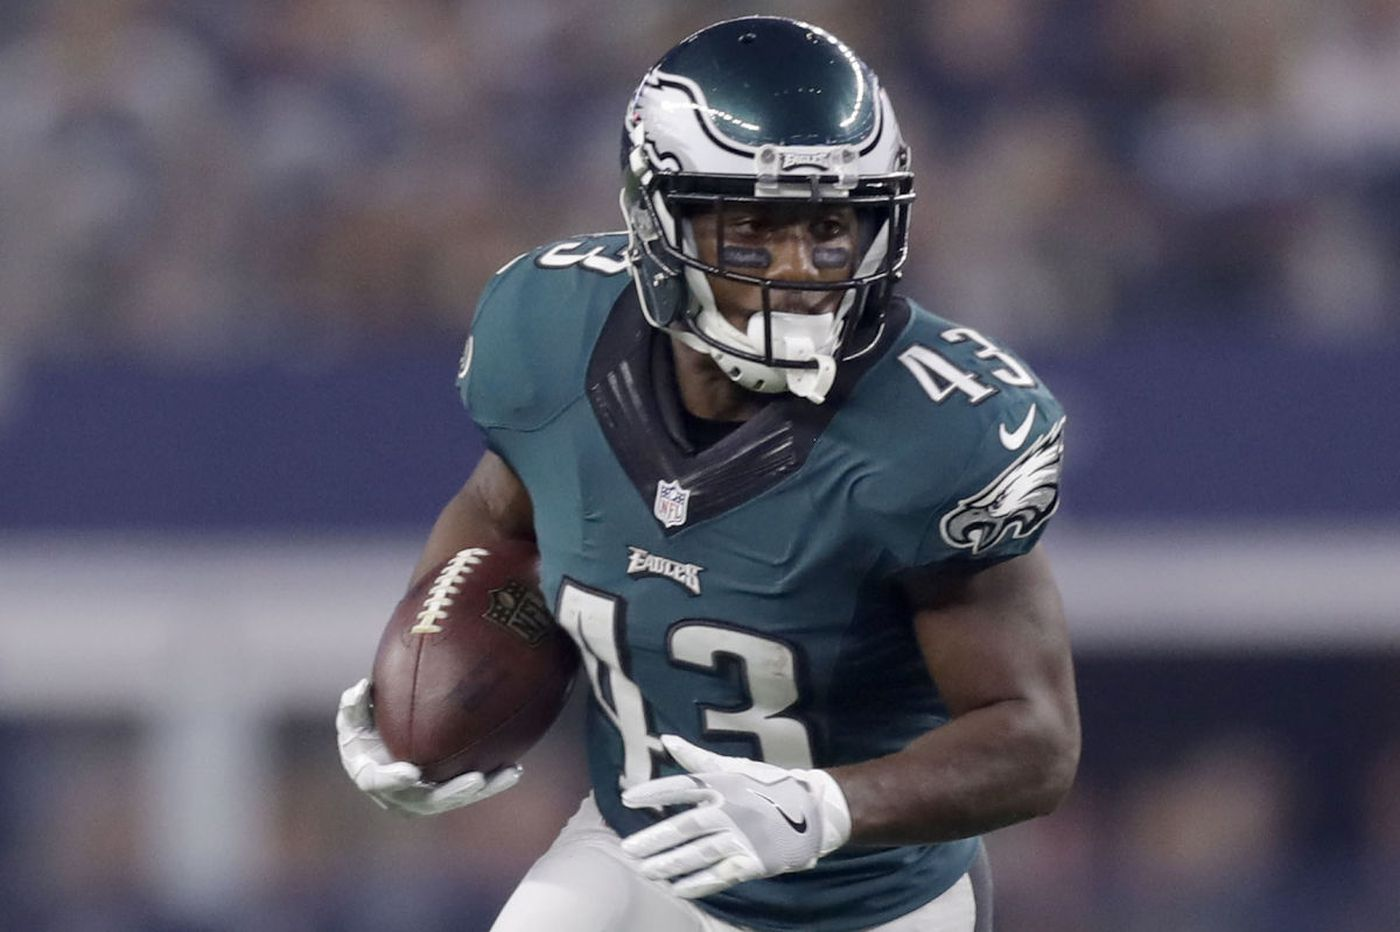 Sproles, the littlest workhorse, shows no signs of slowing down